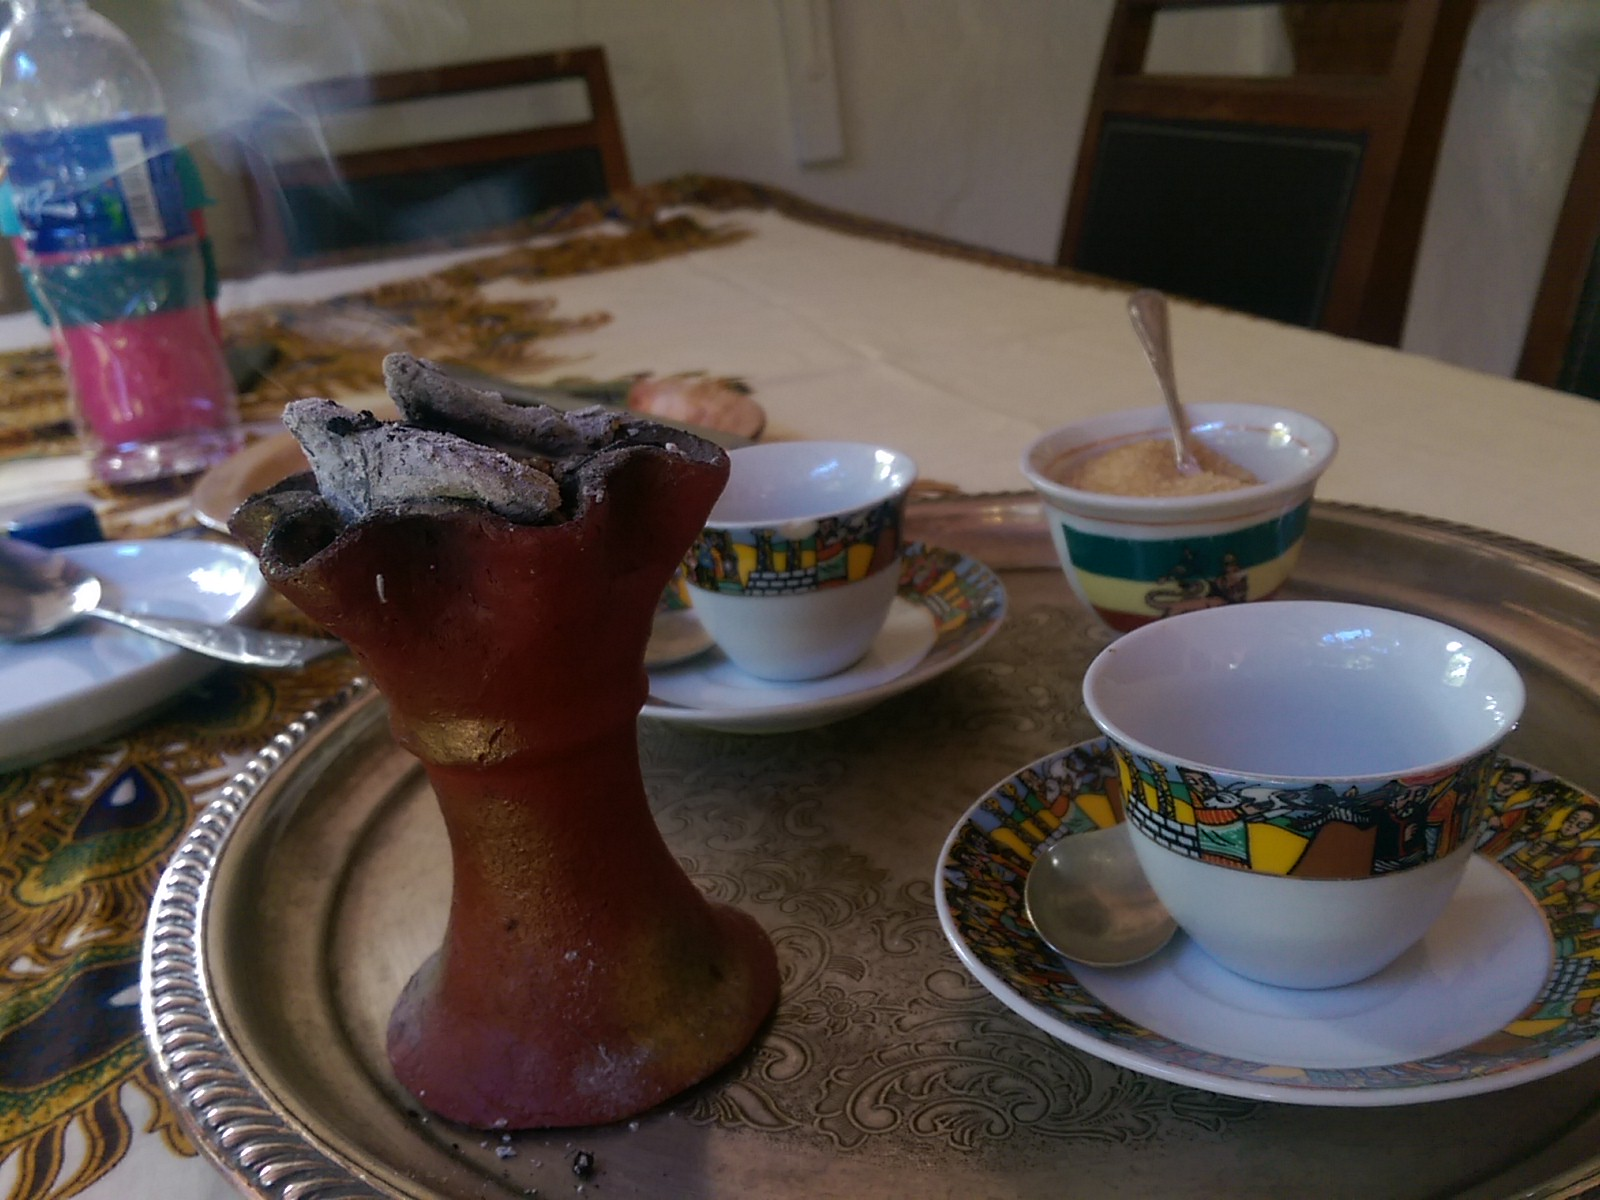 A round metal tray with two white coffee cups and a funnel of smoldering incense